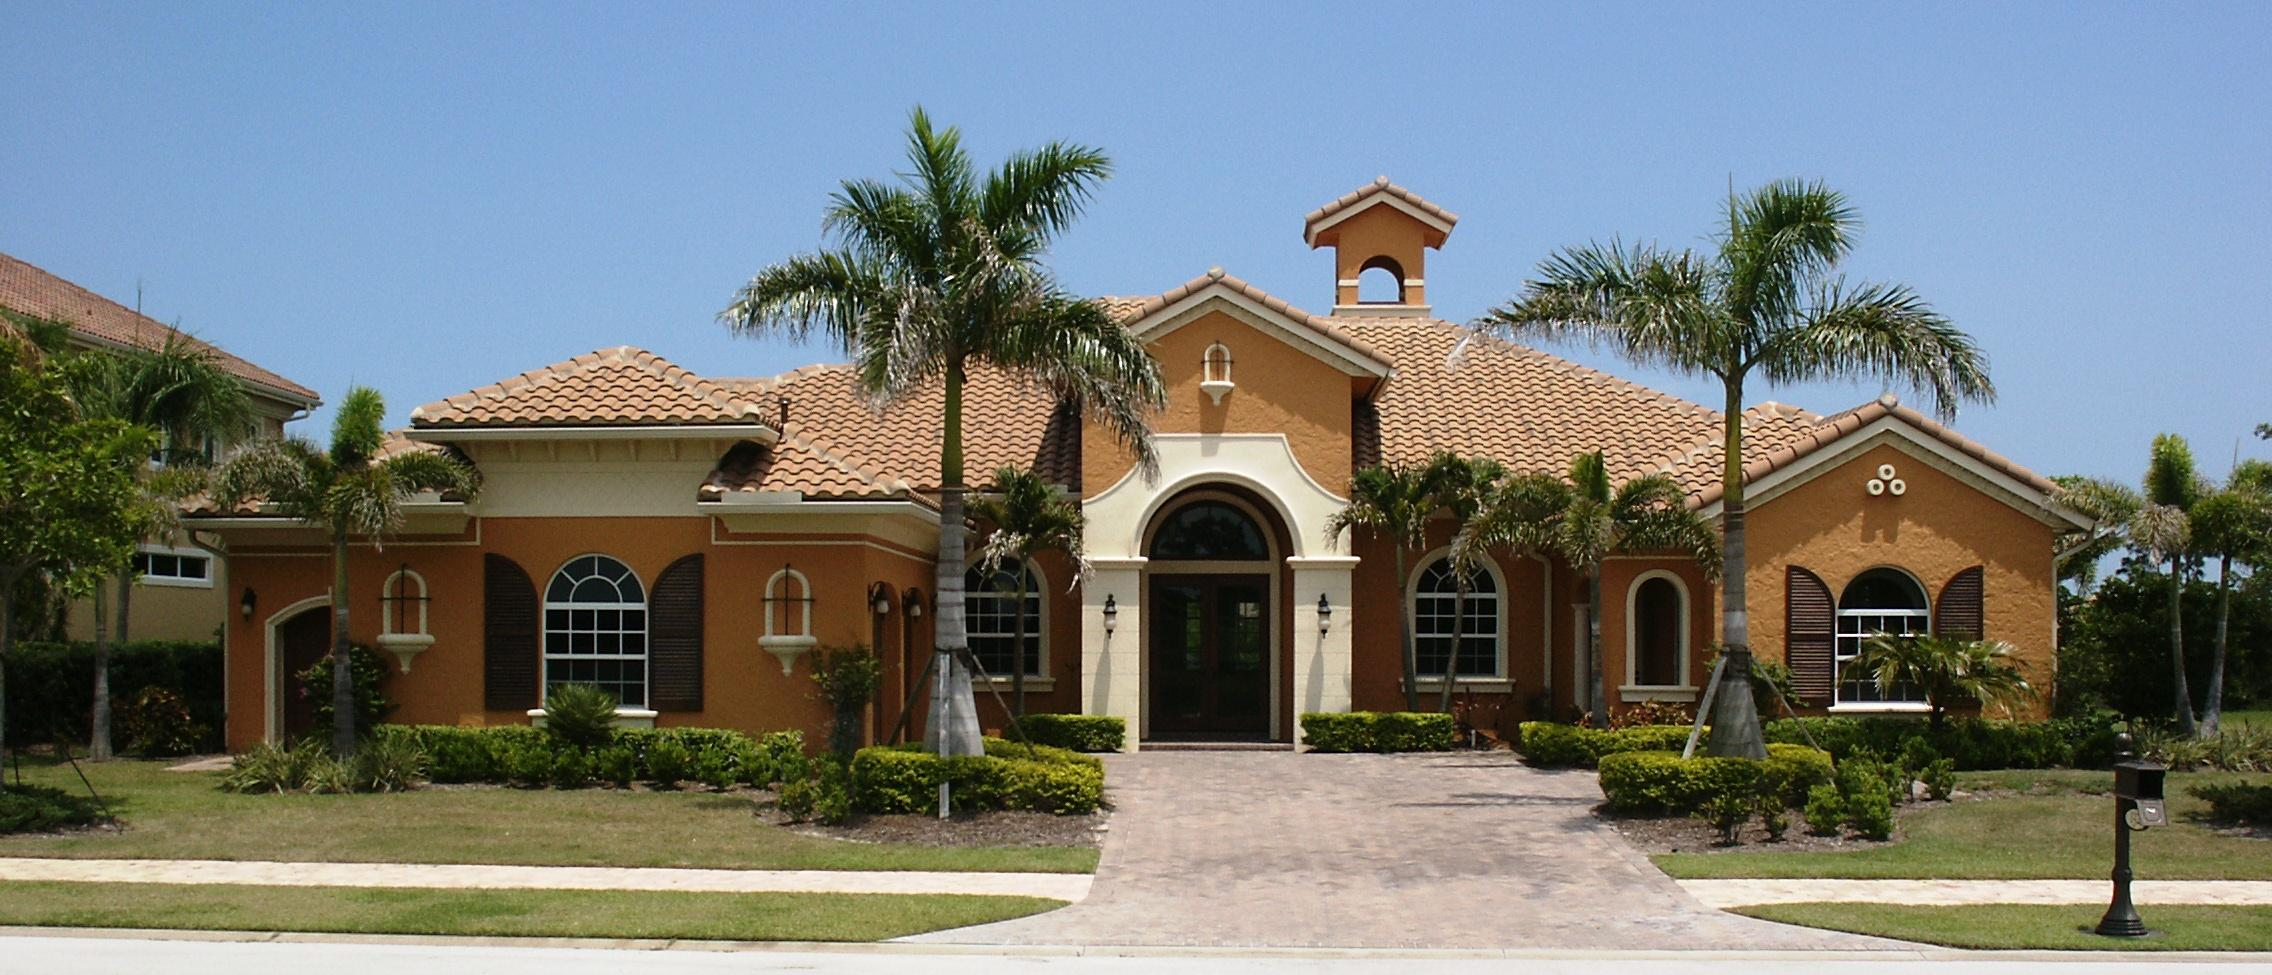 Olde Florida Realty